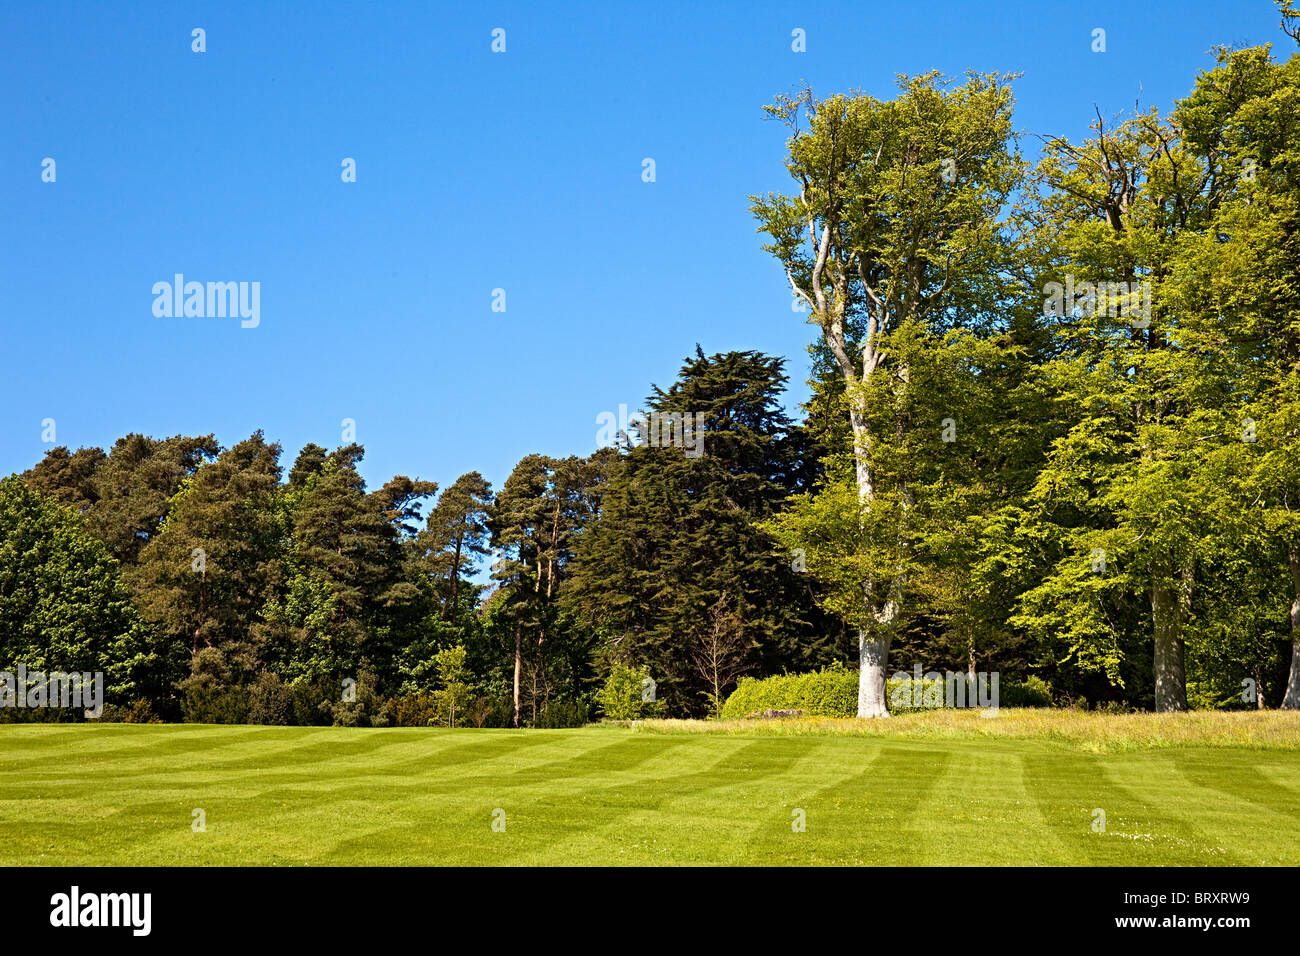 A beautiful striped lawn with trees in the background - Stock Image